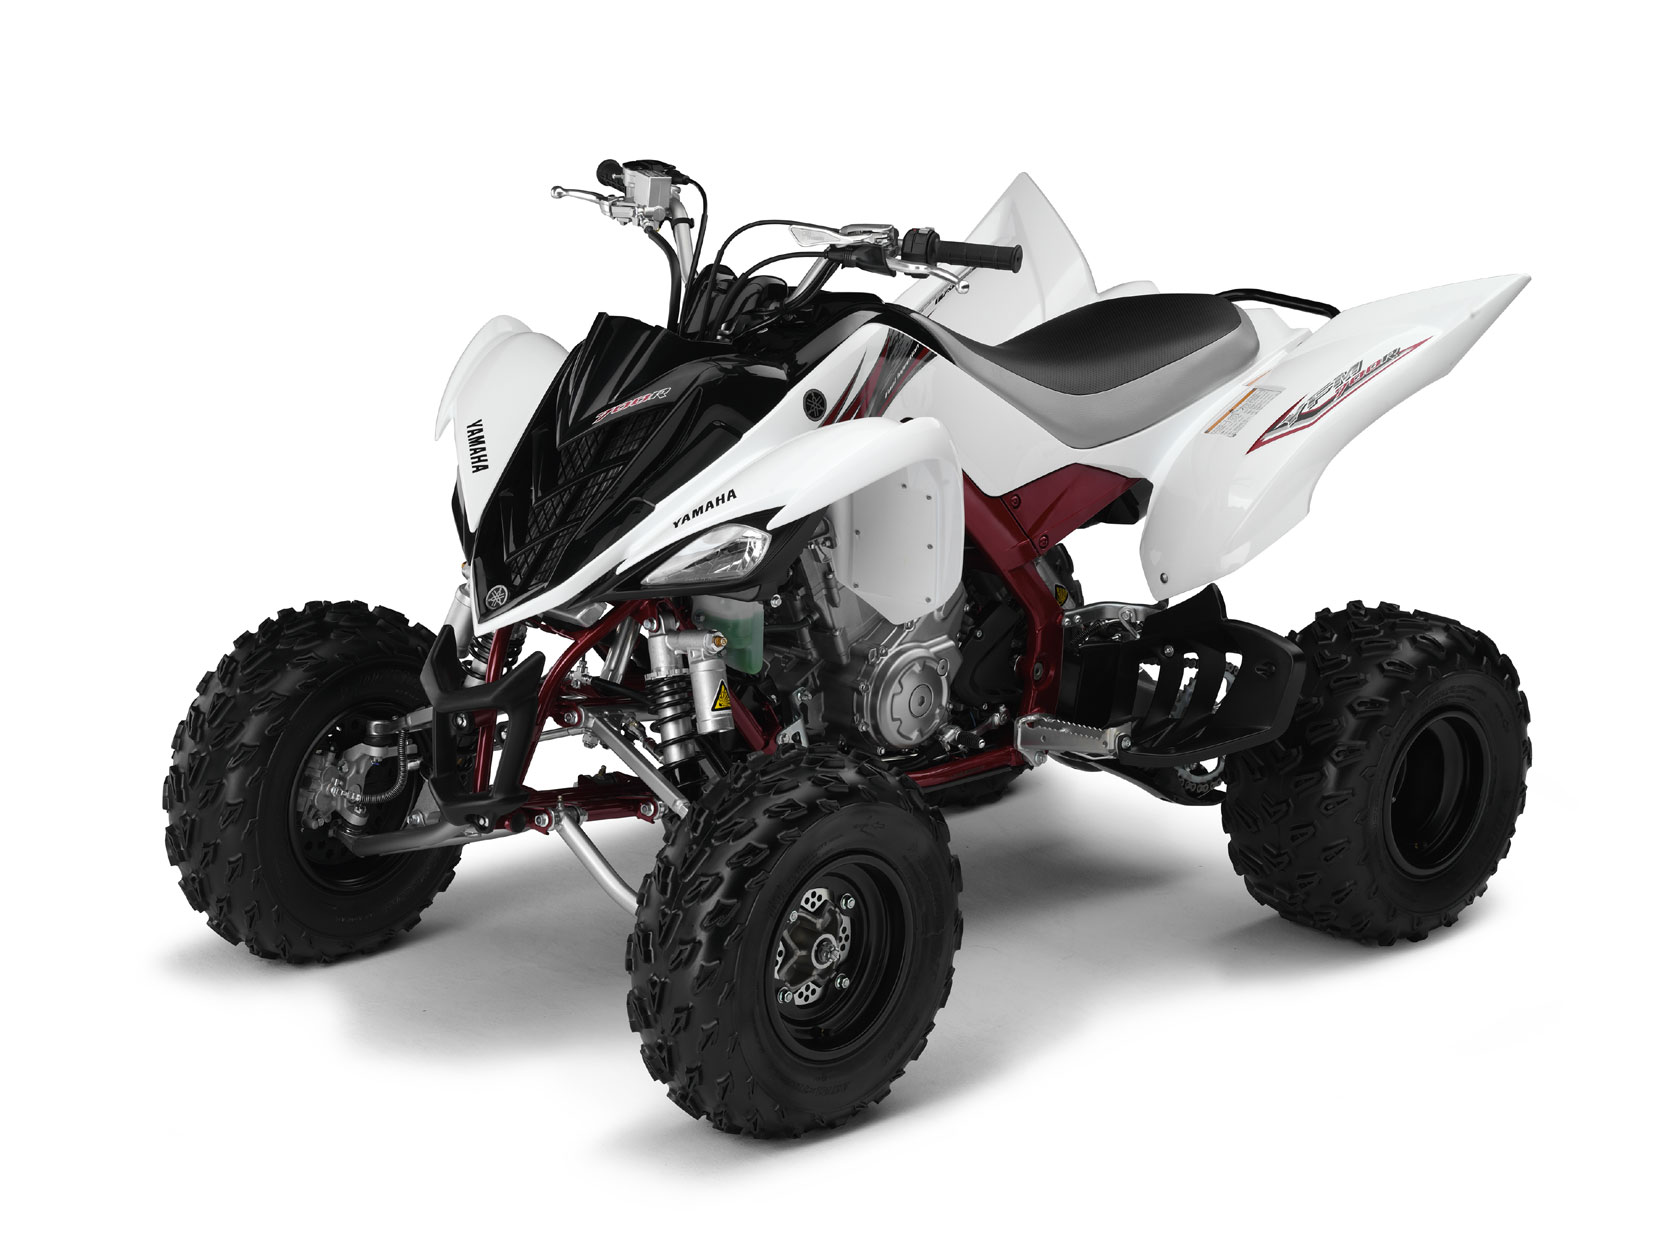 yamaha raptor 700r specs 2008 2009 autoevolution. Black Bedroom Furniture Sets. Home Design Ideas